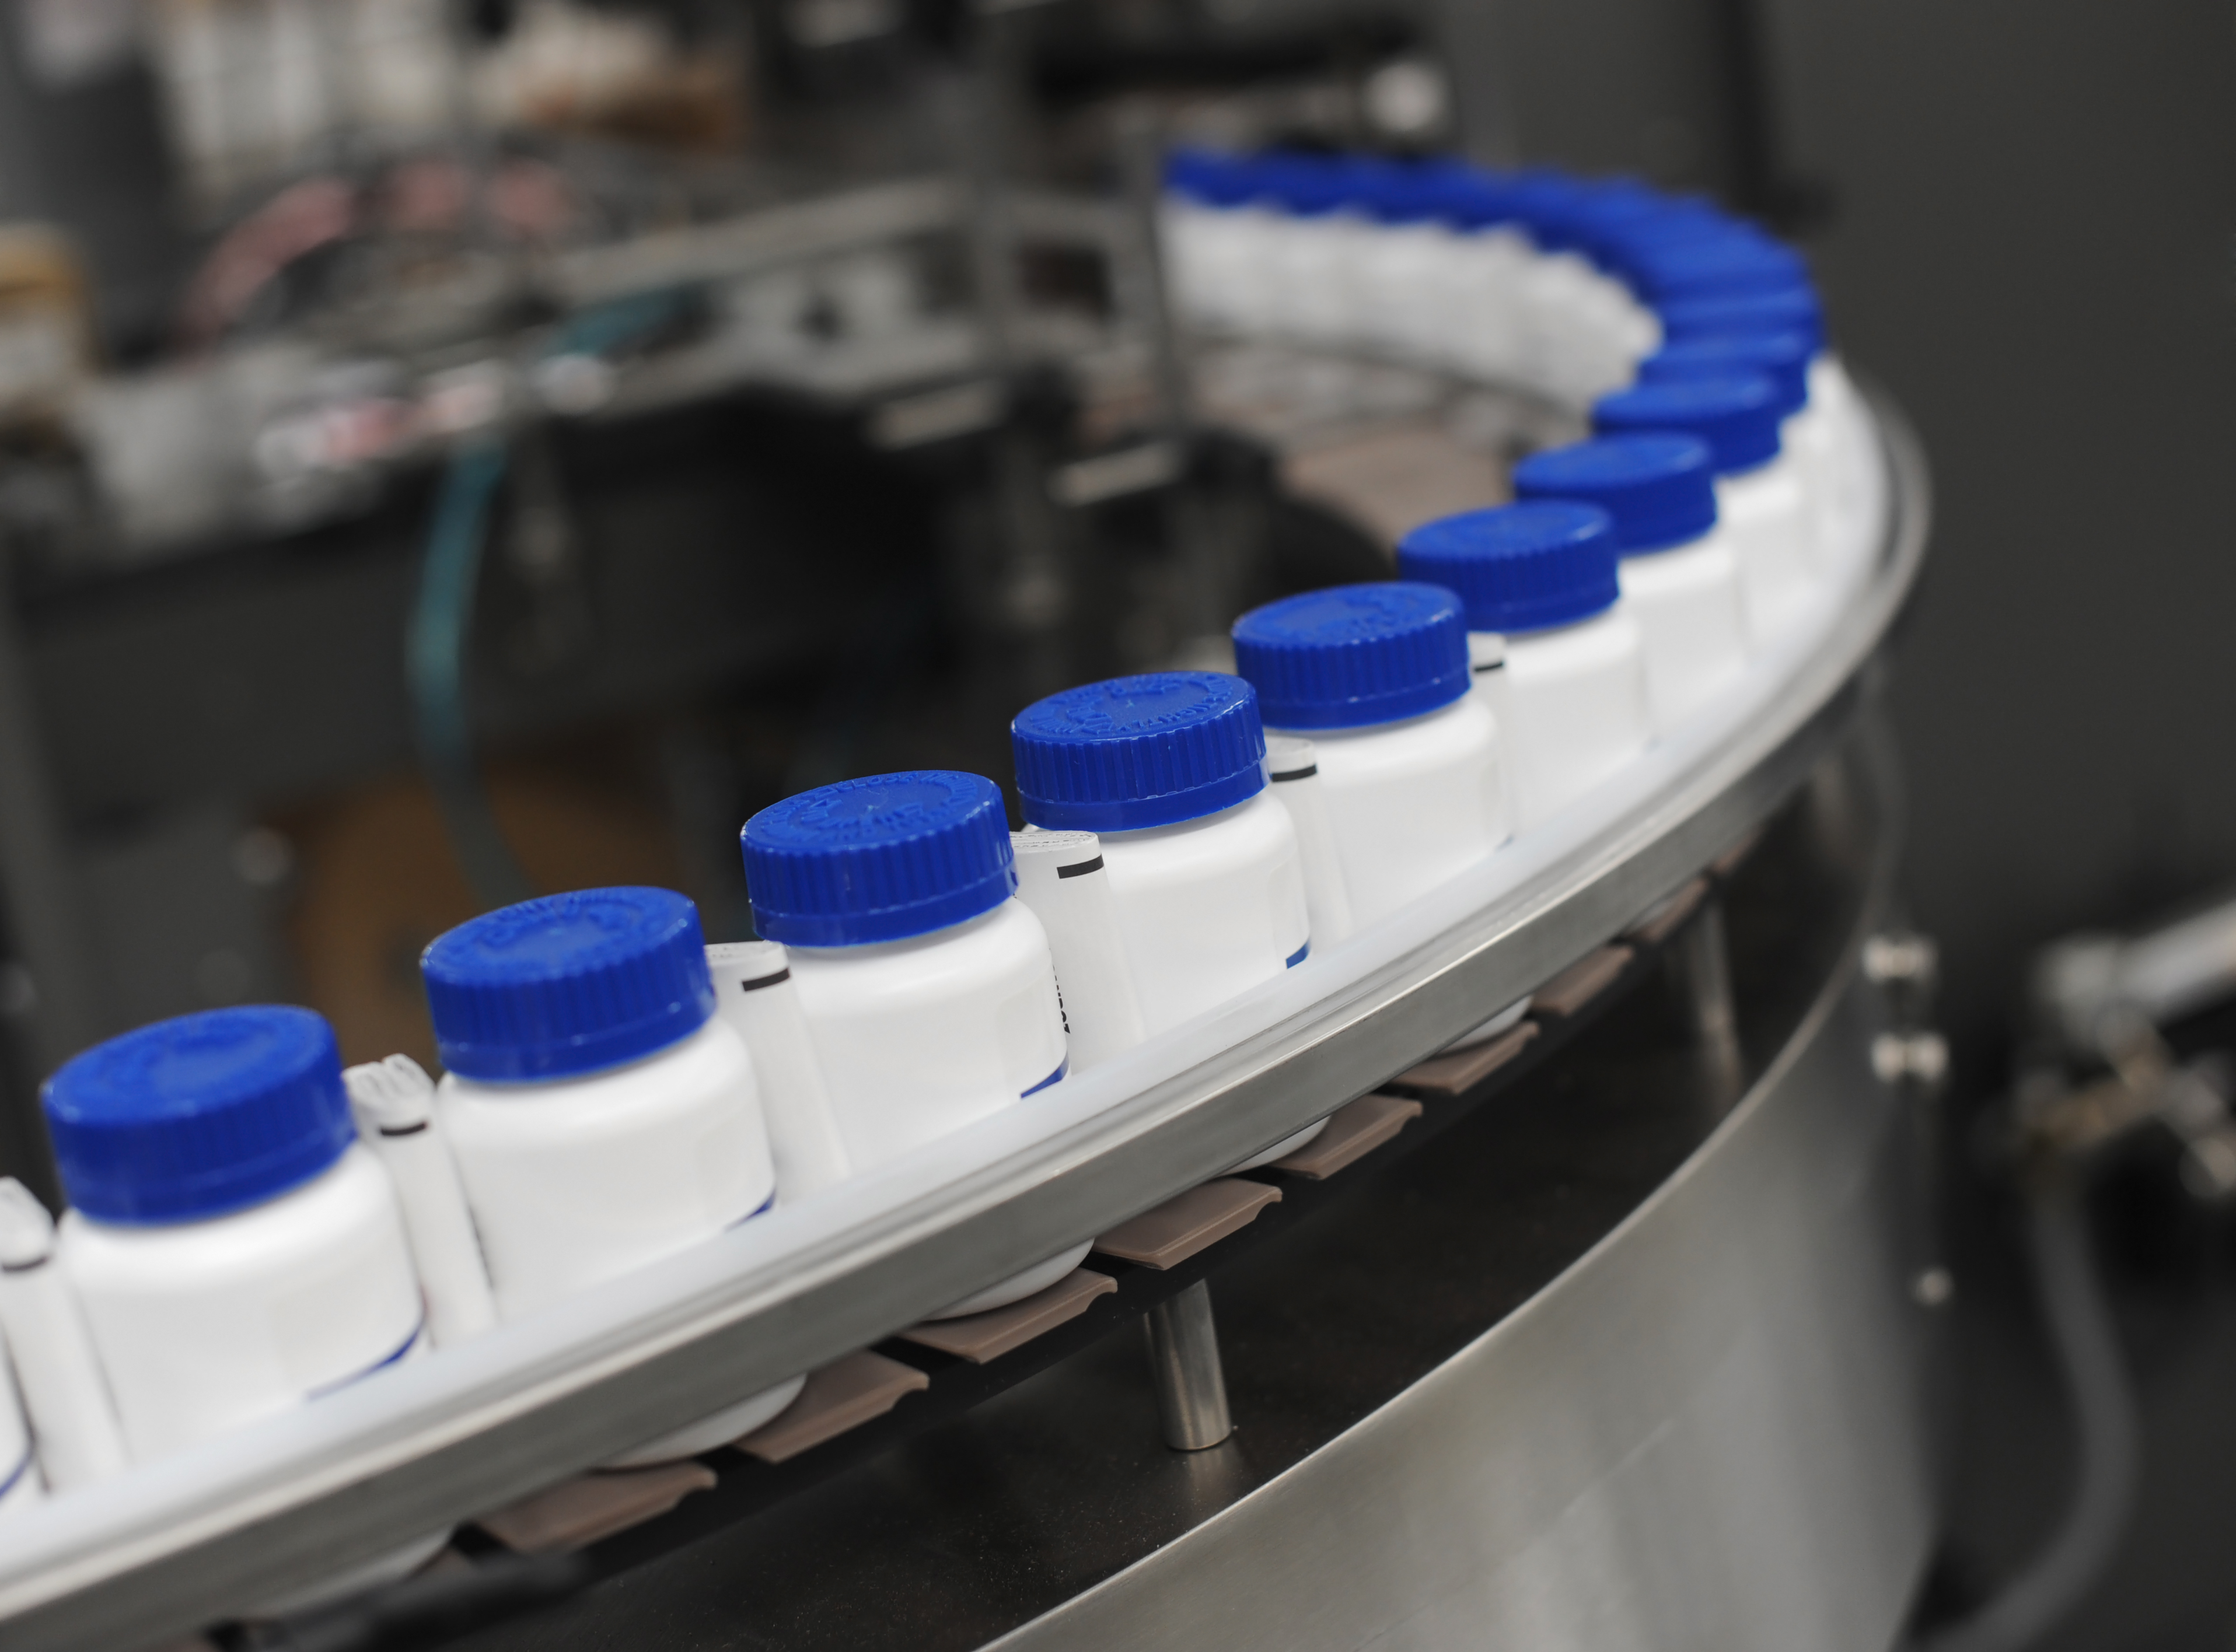 Blue-Capped-Drug-Bottles-on-Conveyor